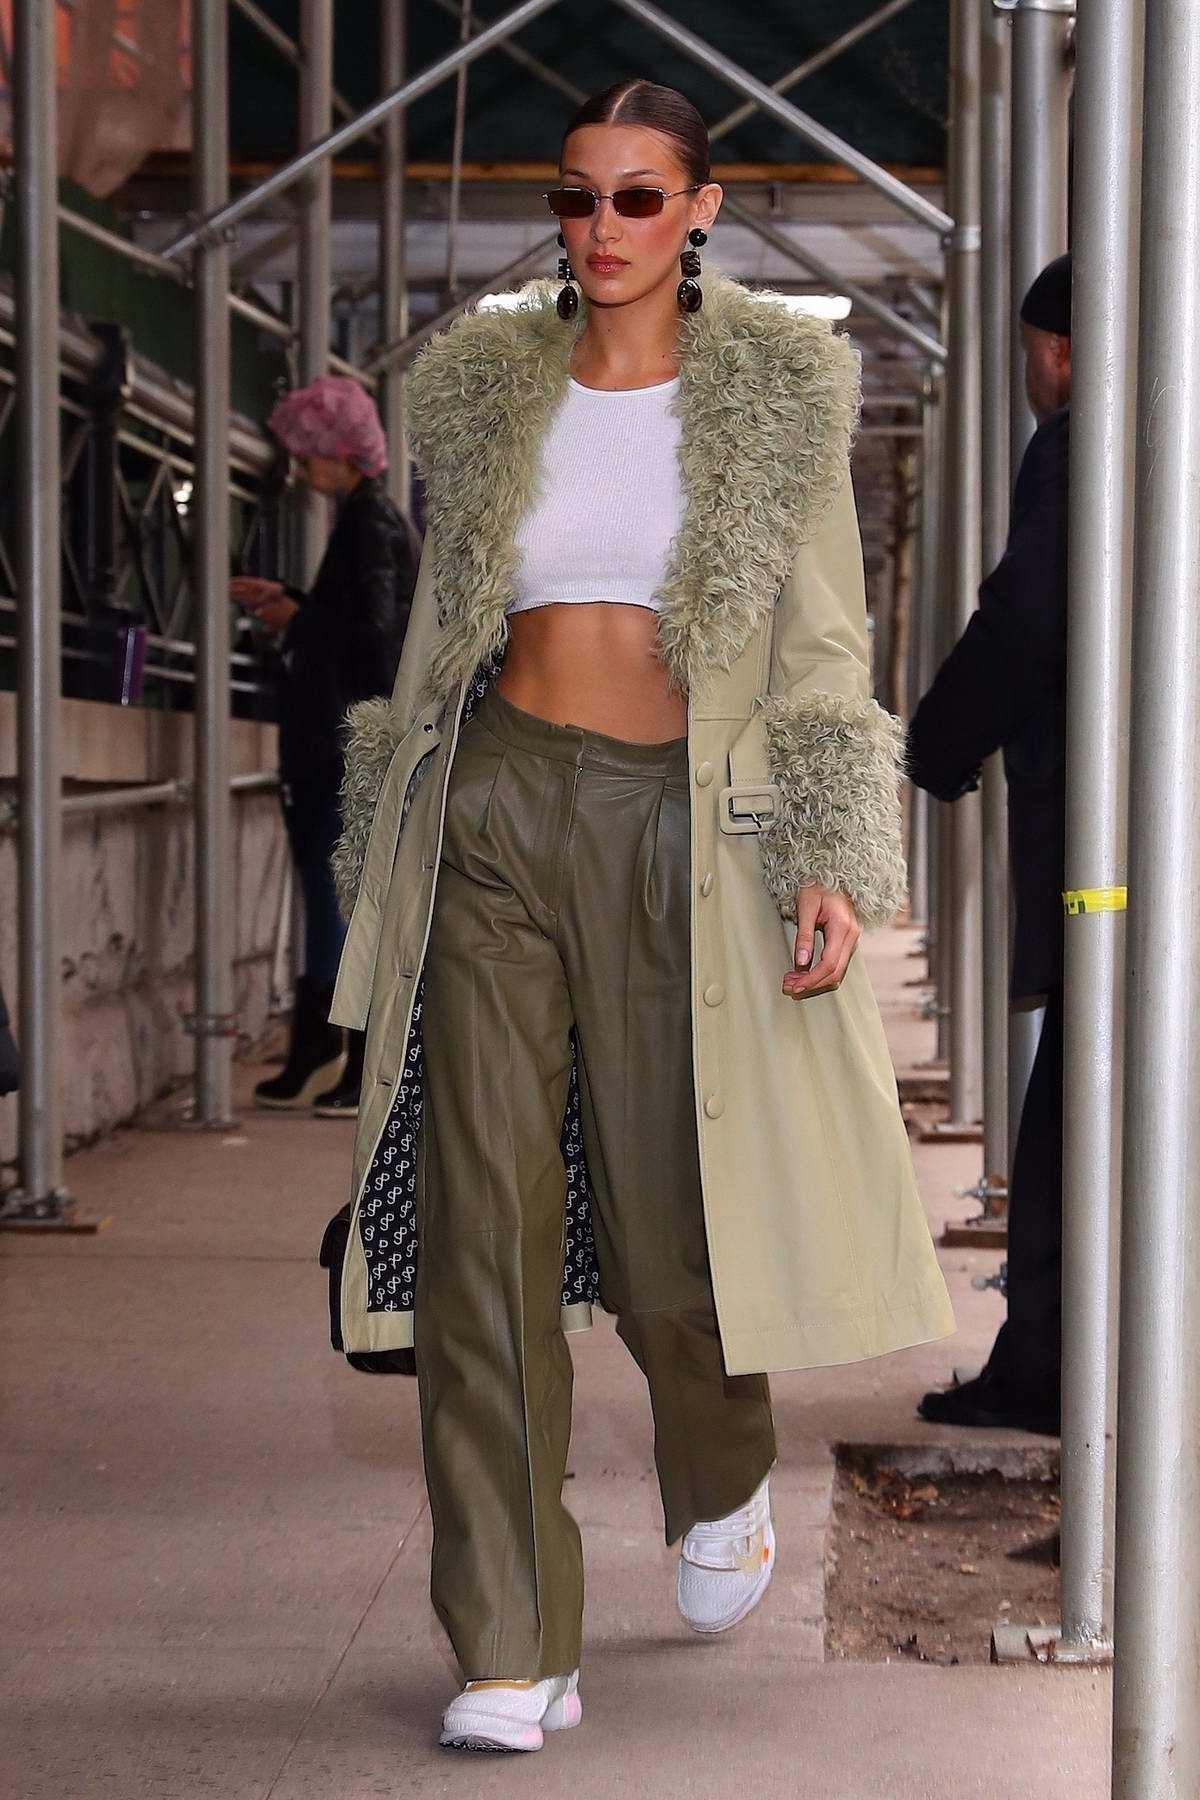 Bella Hadid shows off her toned abs in a white crop top as she heads into the Marc Jacobs show in New York City